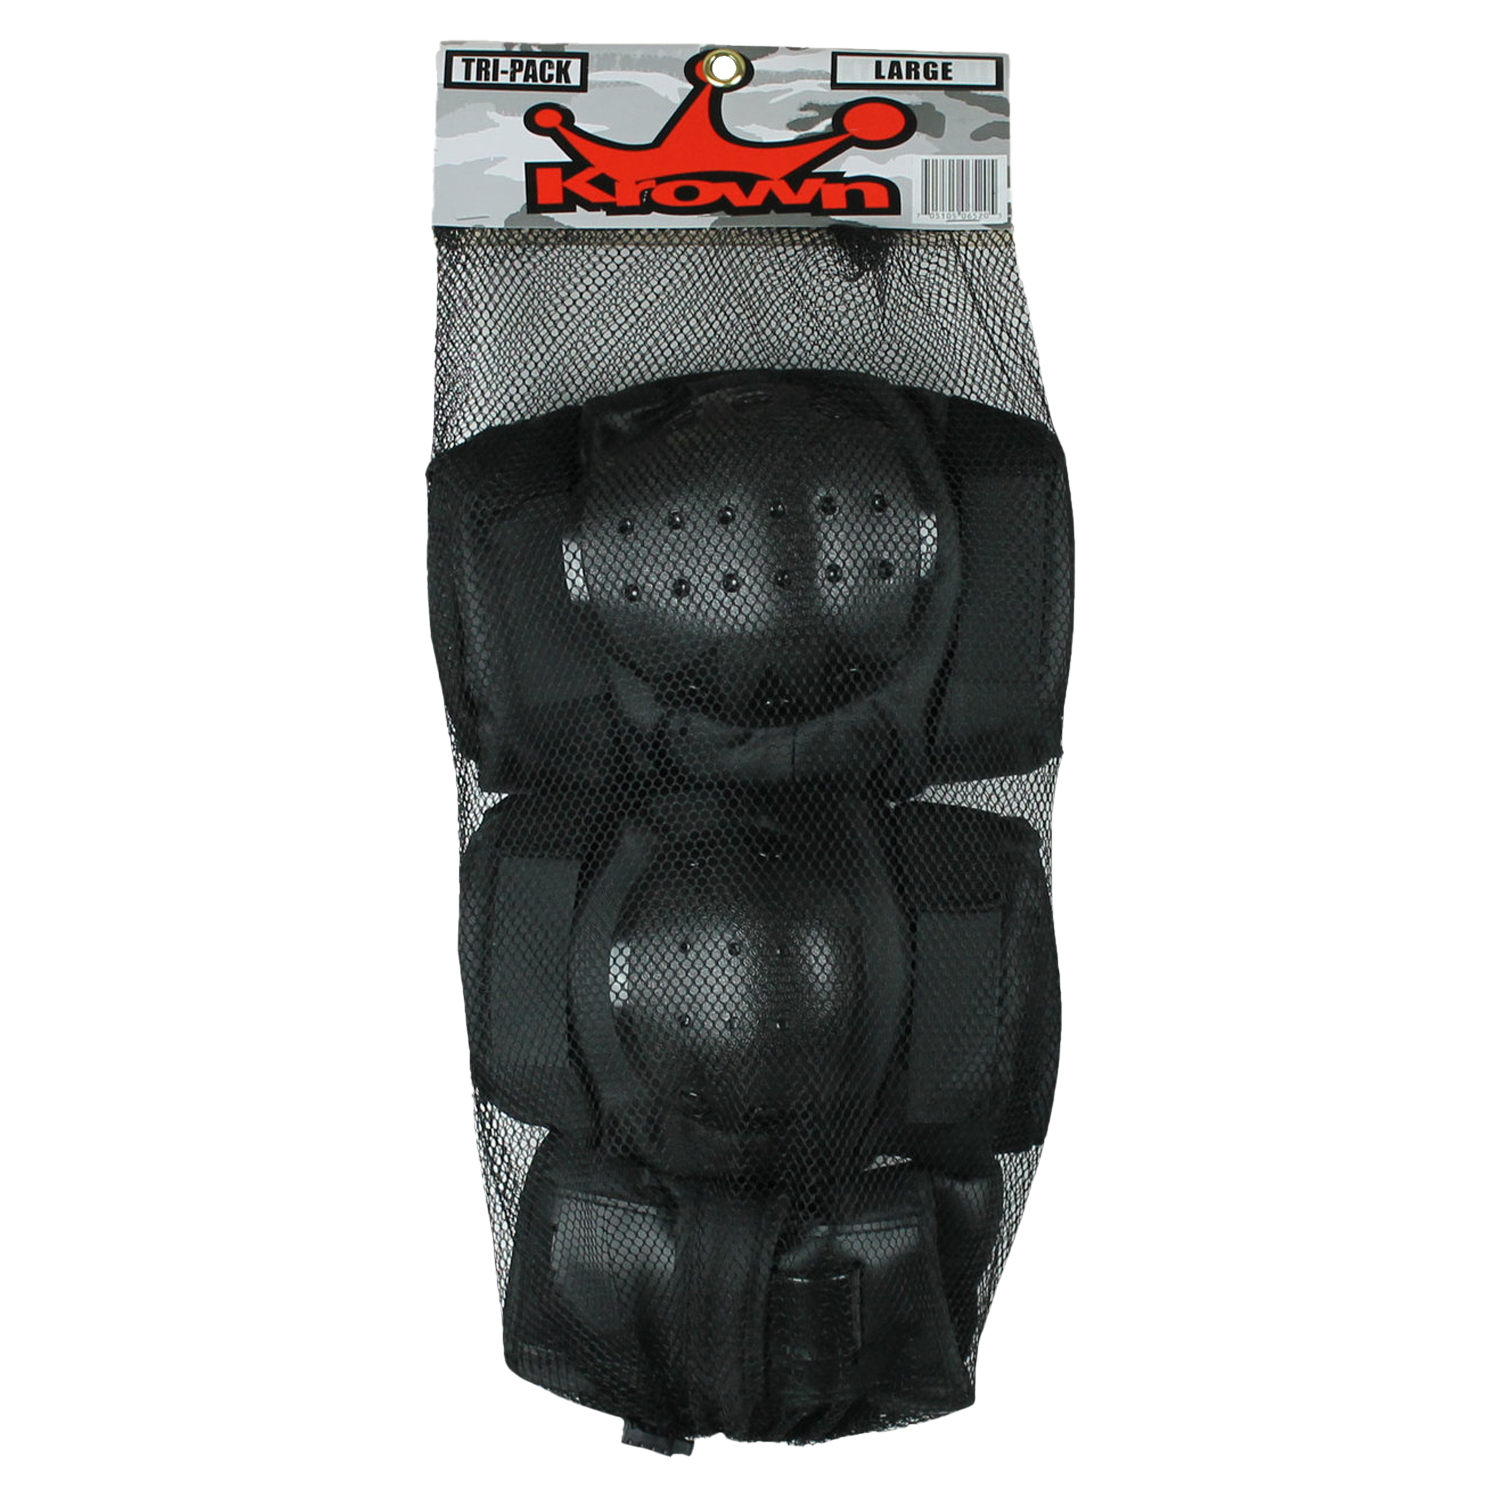 Krown Tri-Pack Skateboard Pads - Knee/Elbow/Wrist - Size Large